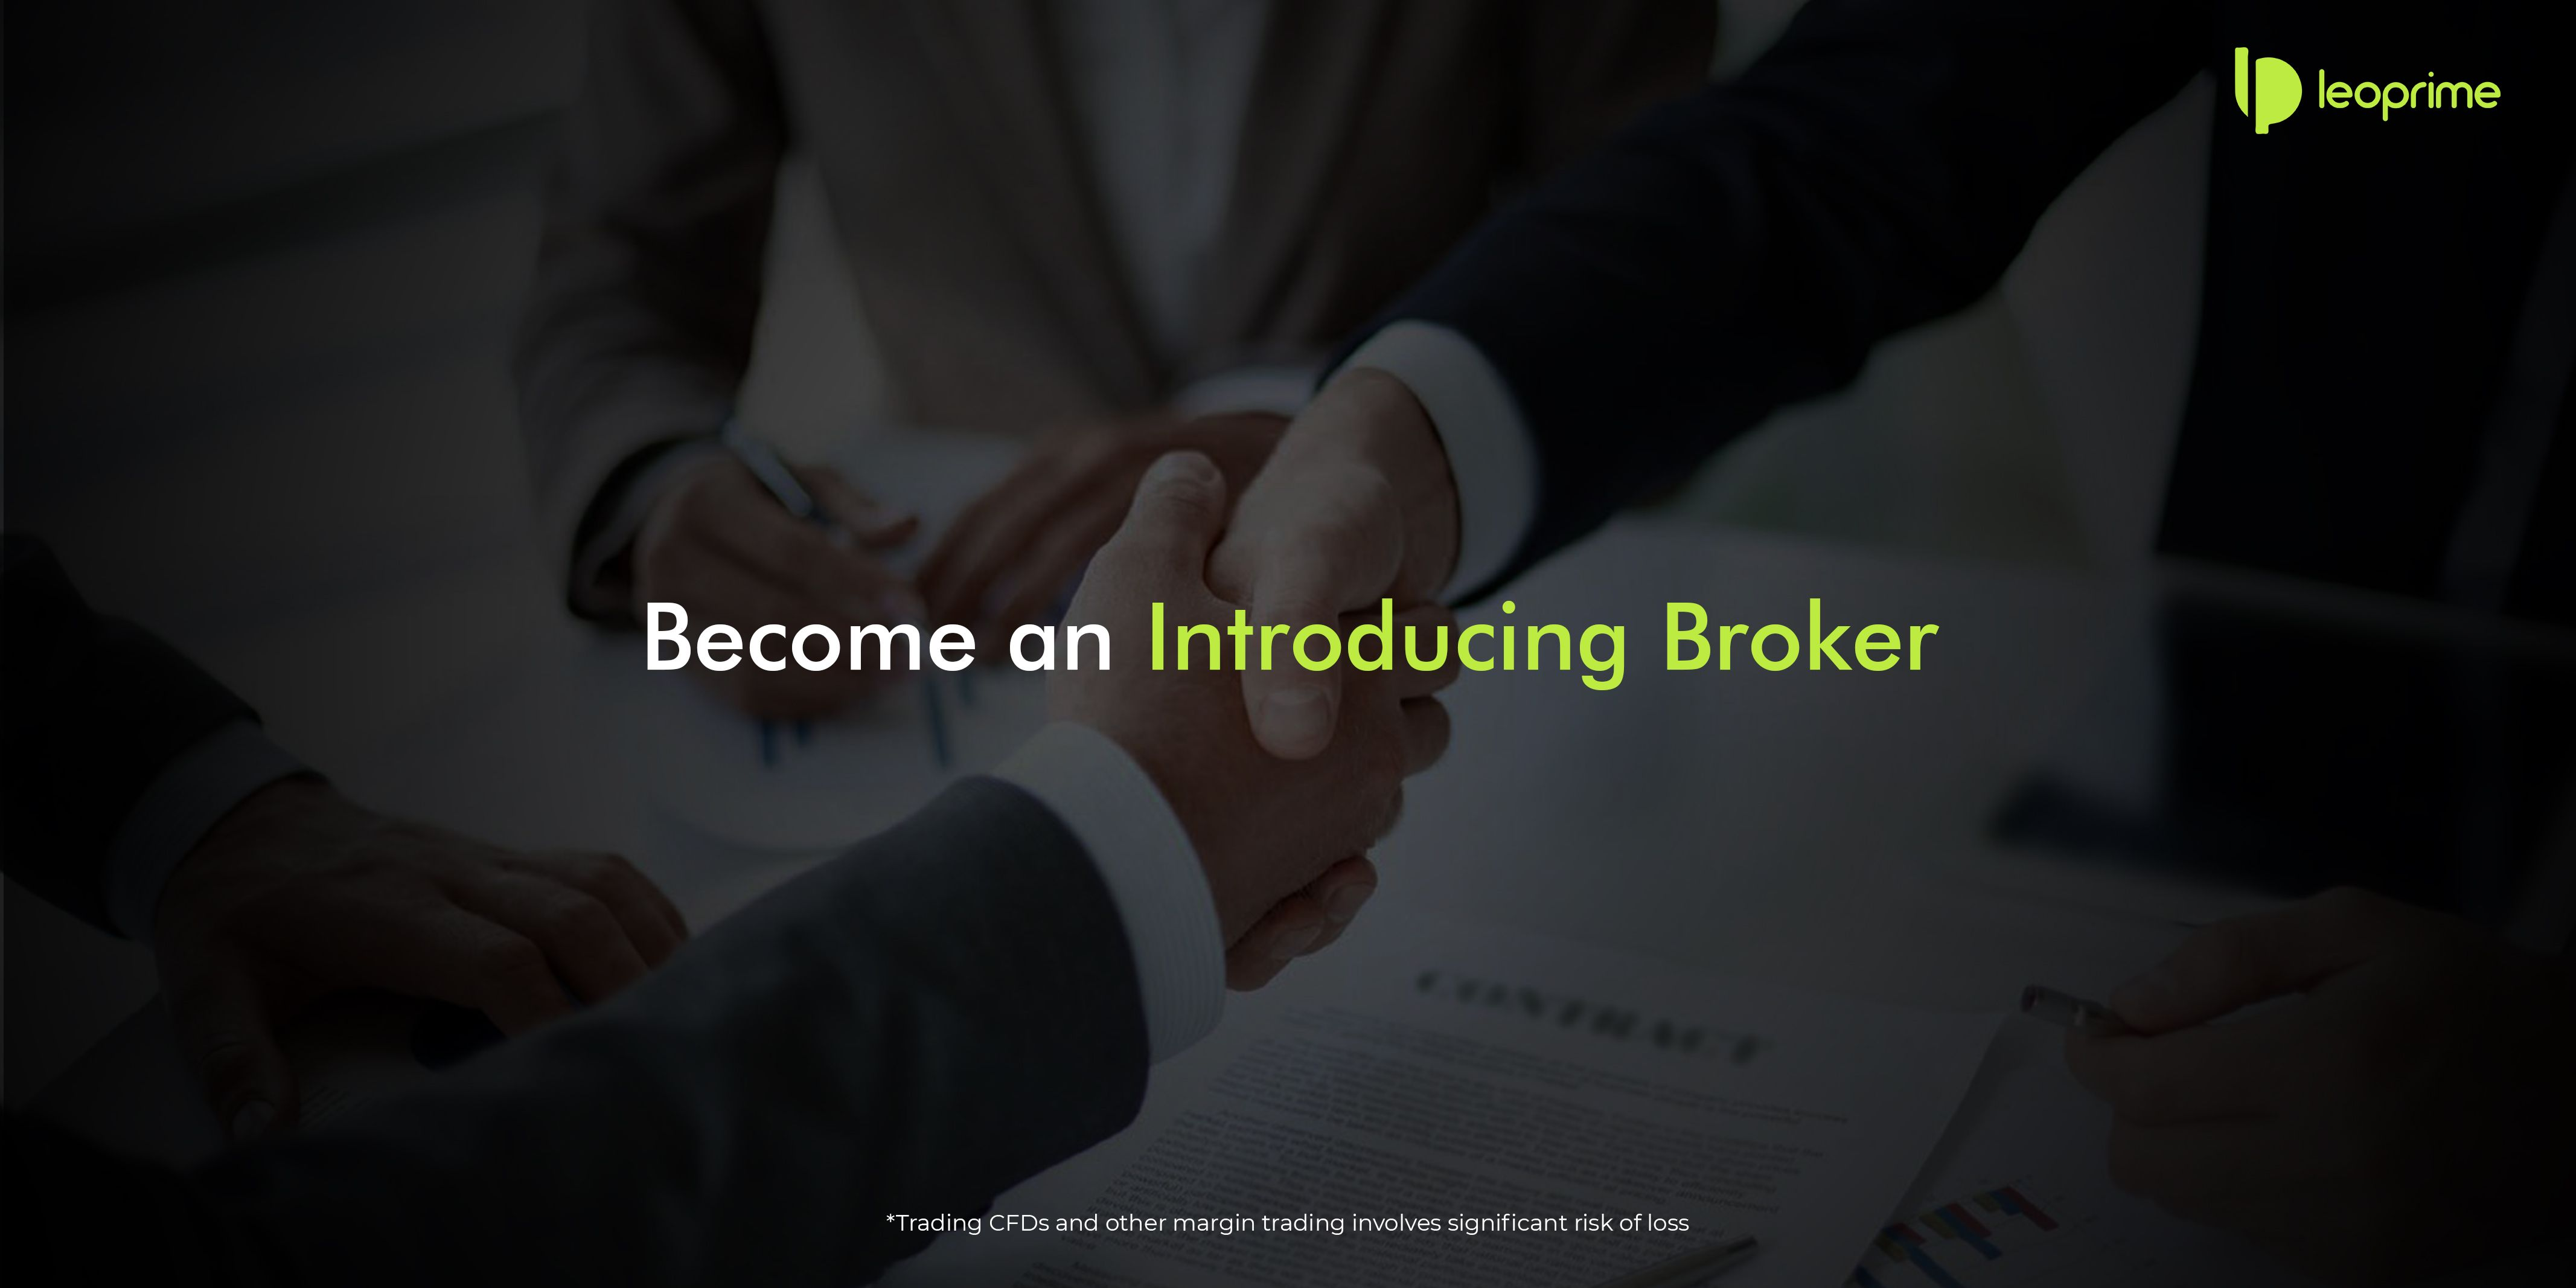 Become An Introducingbroker Today Refer Clients To Leoprime And